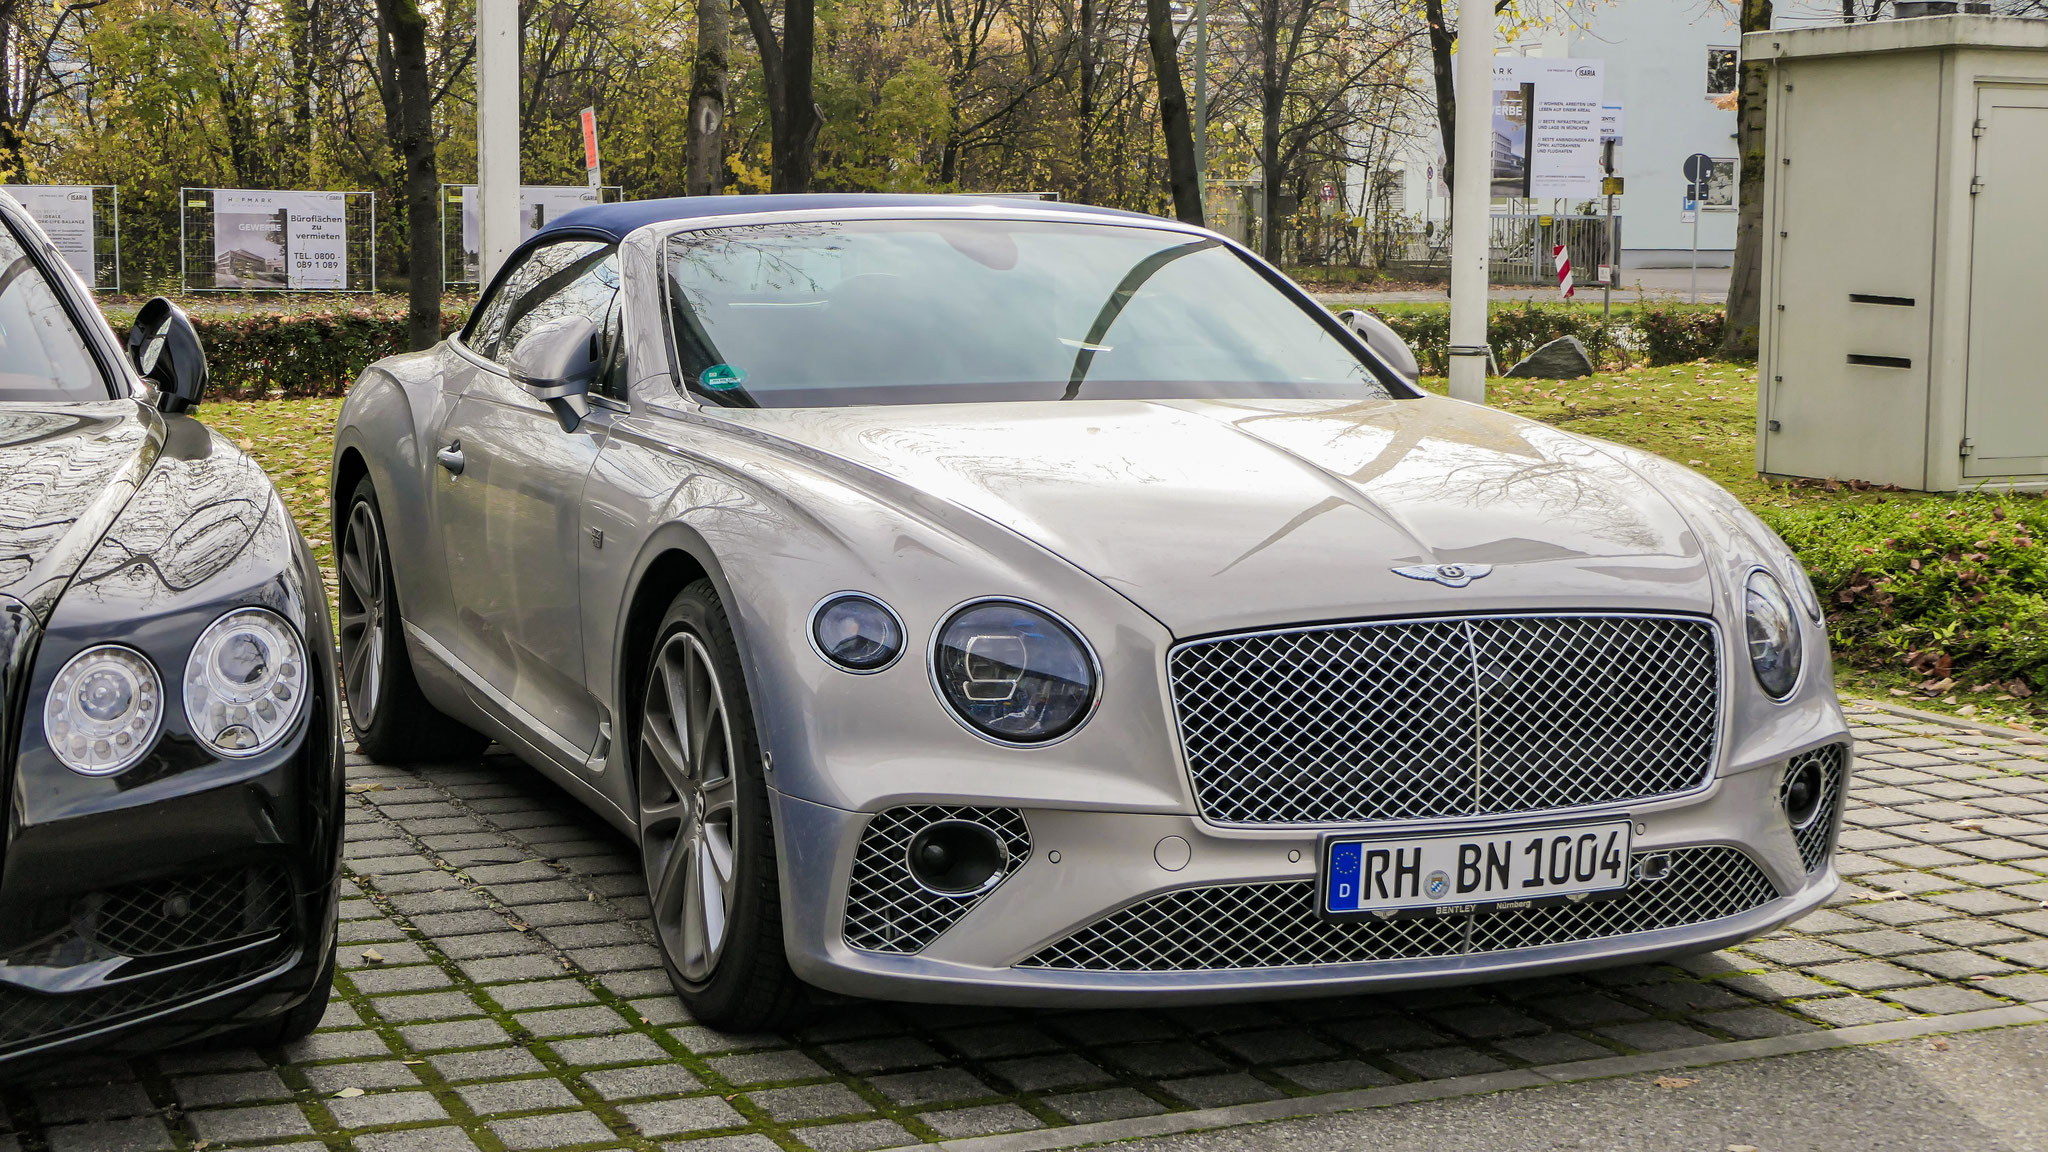 Bentley Continental GTC - RH-BN-1004